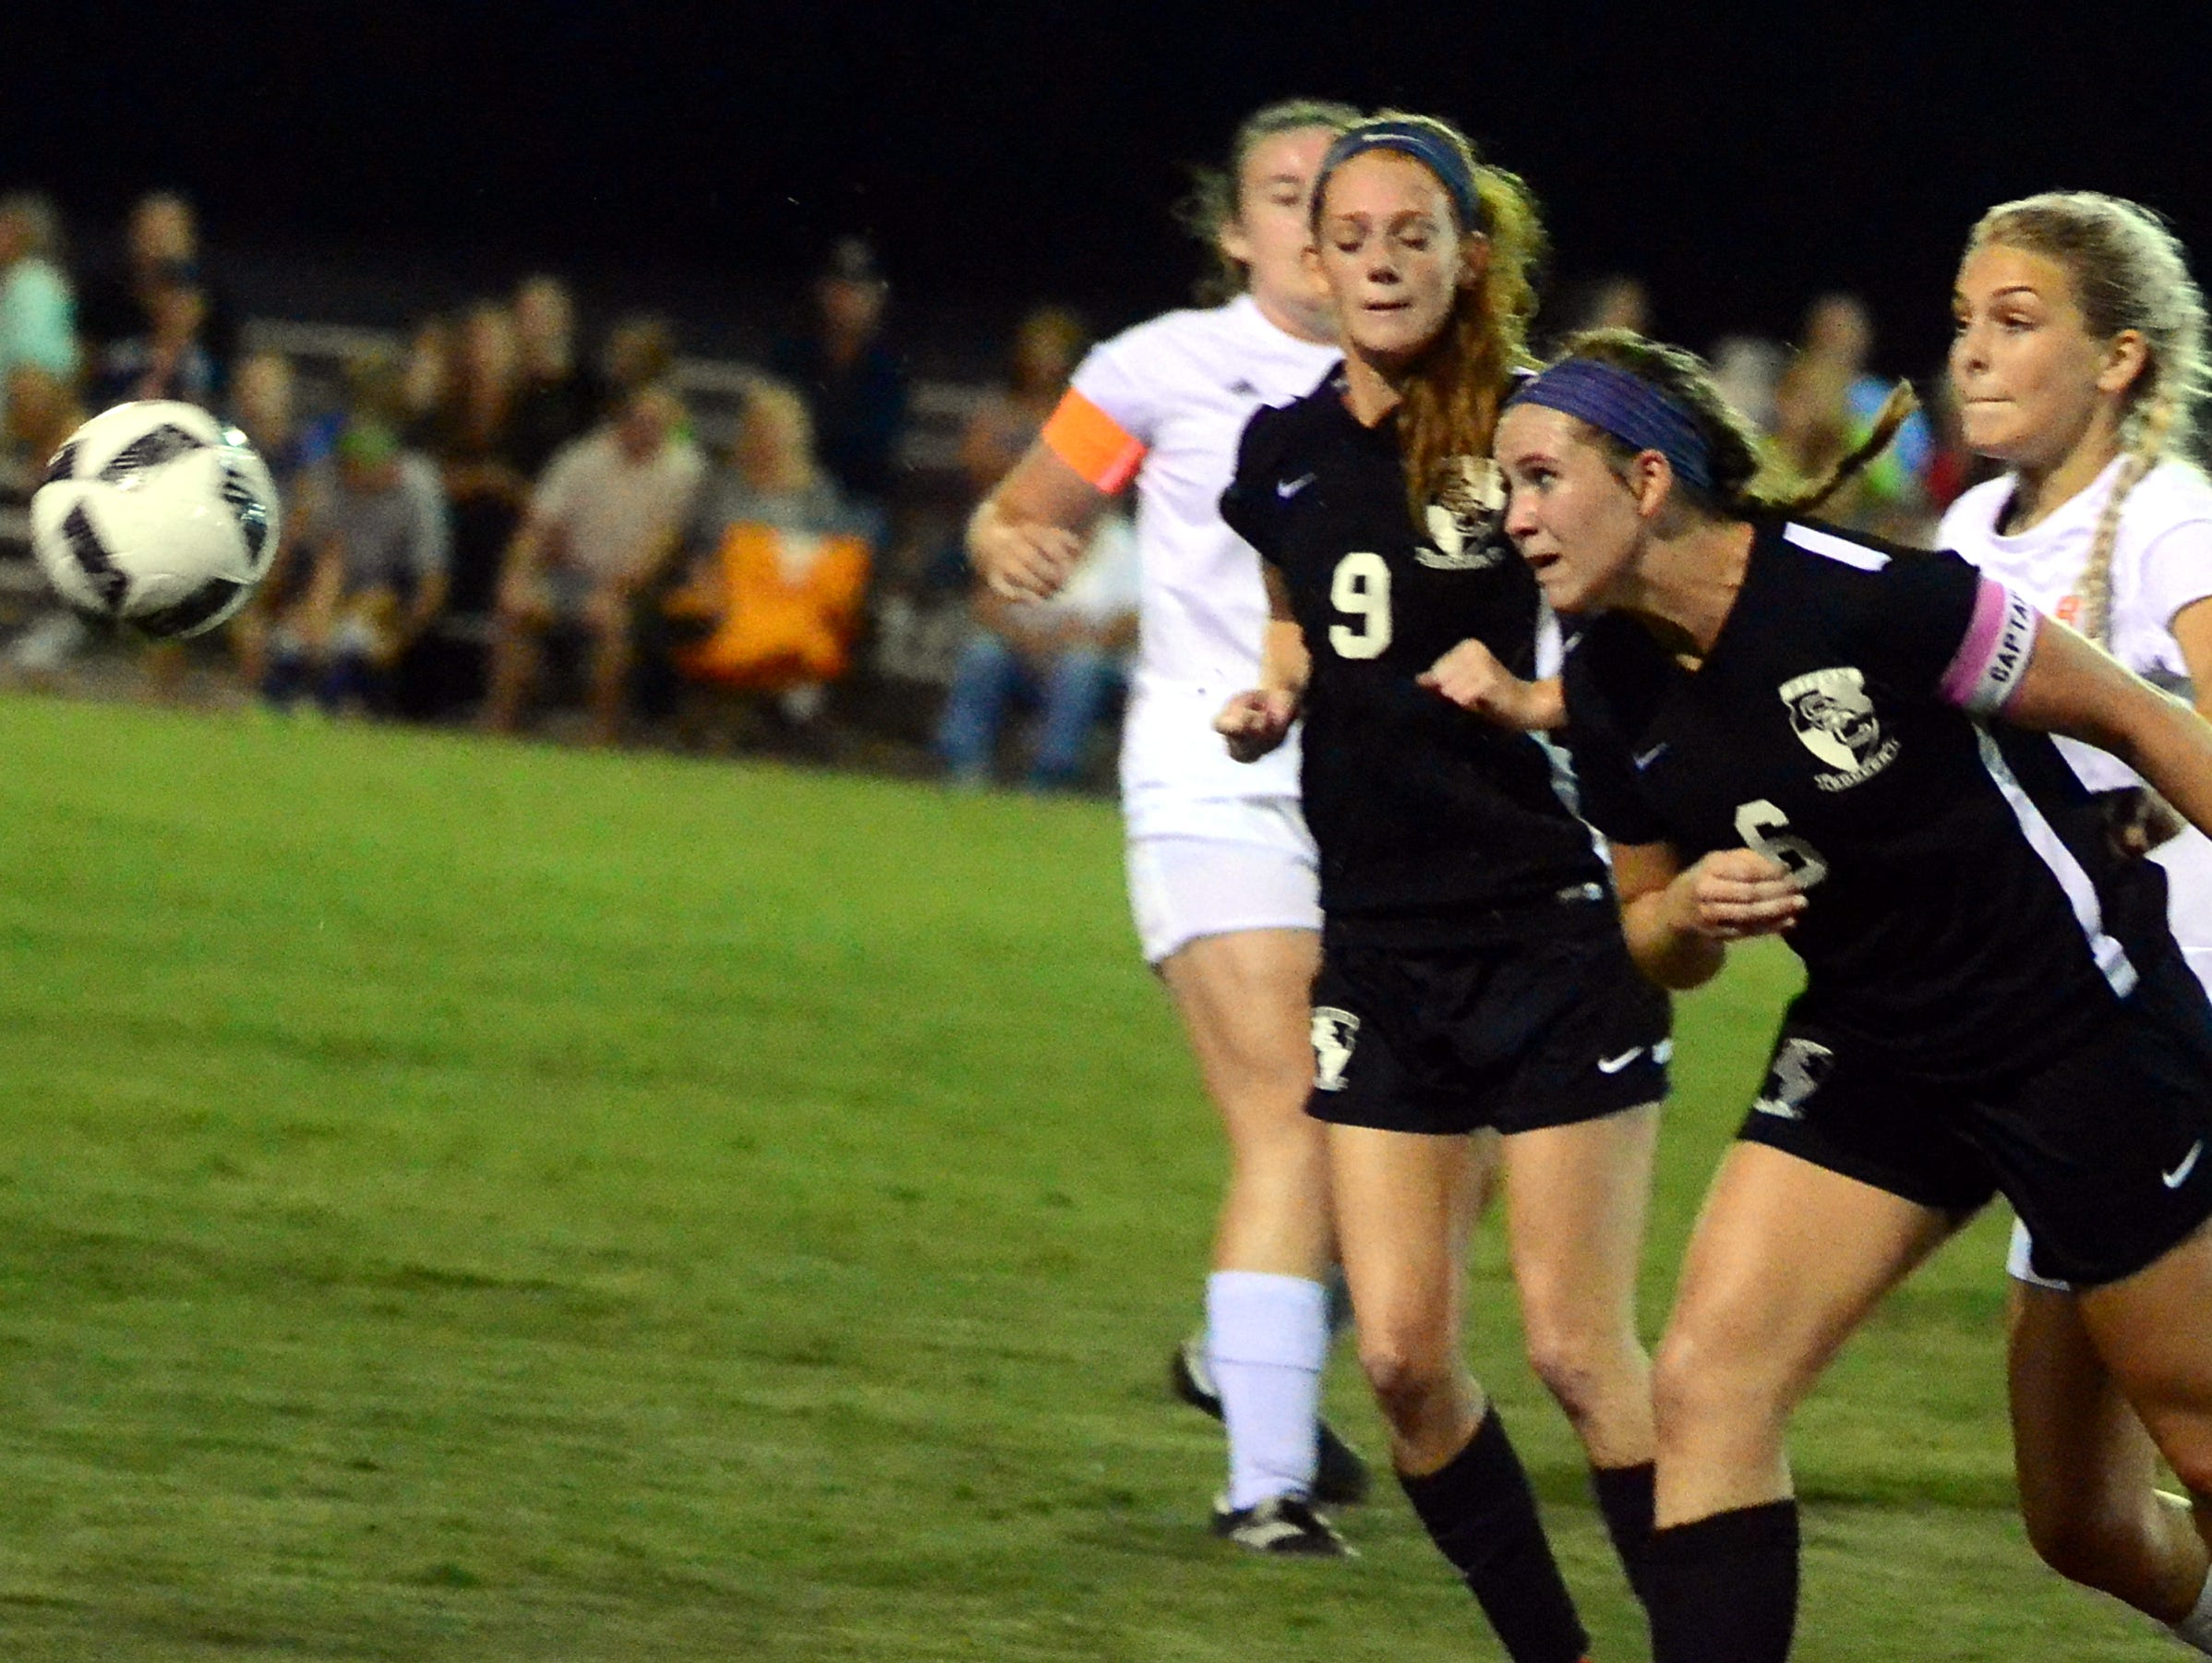 Station Camp High senior Victoria Brown heads the ball away from Beech players during second-half action.